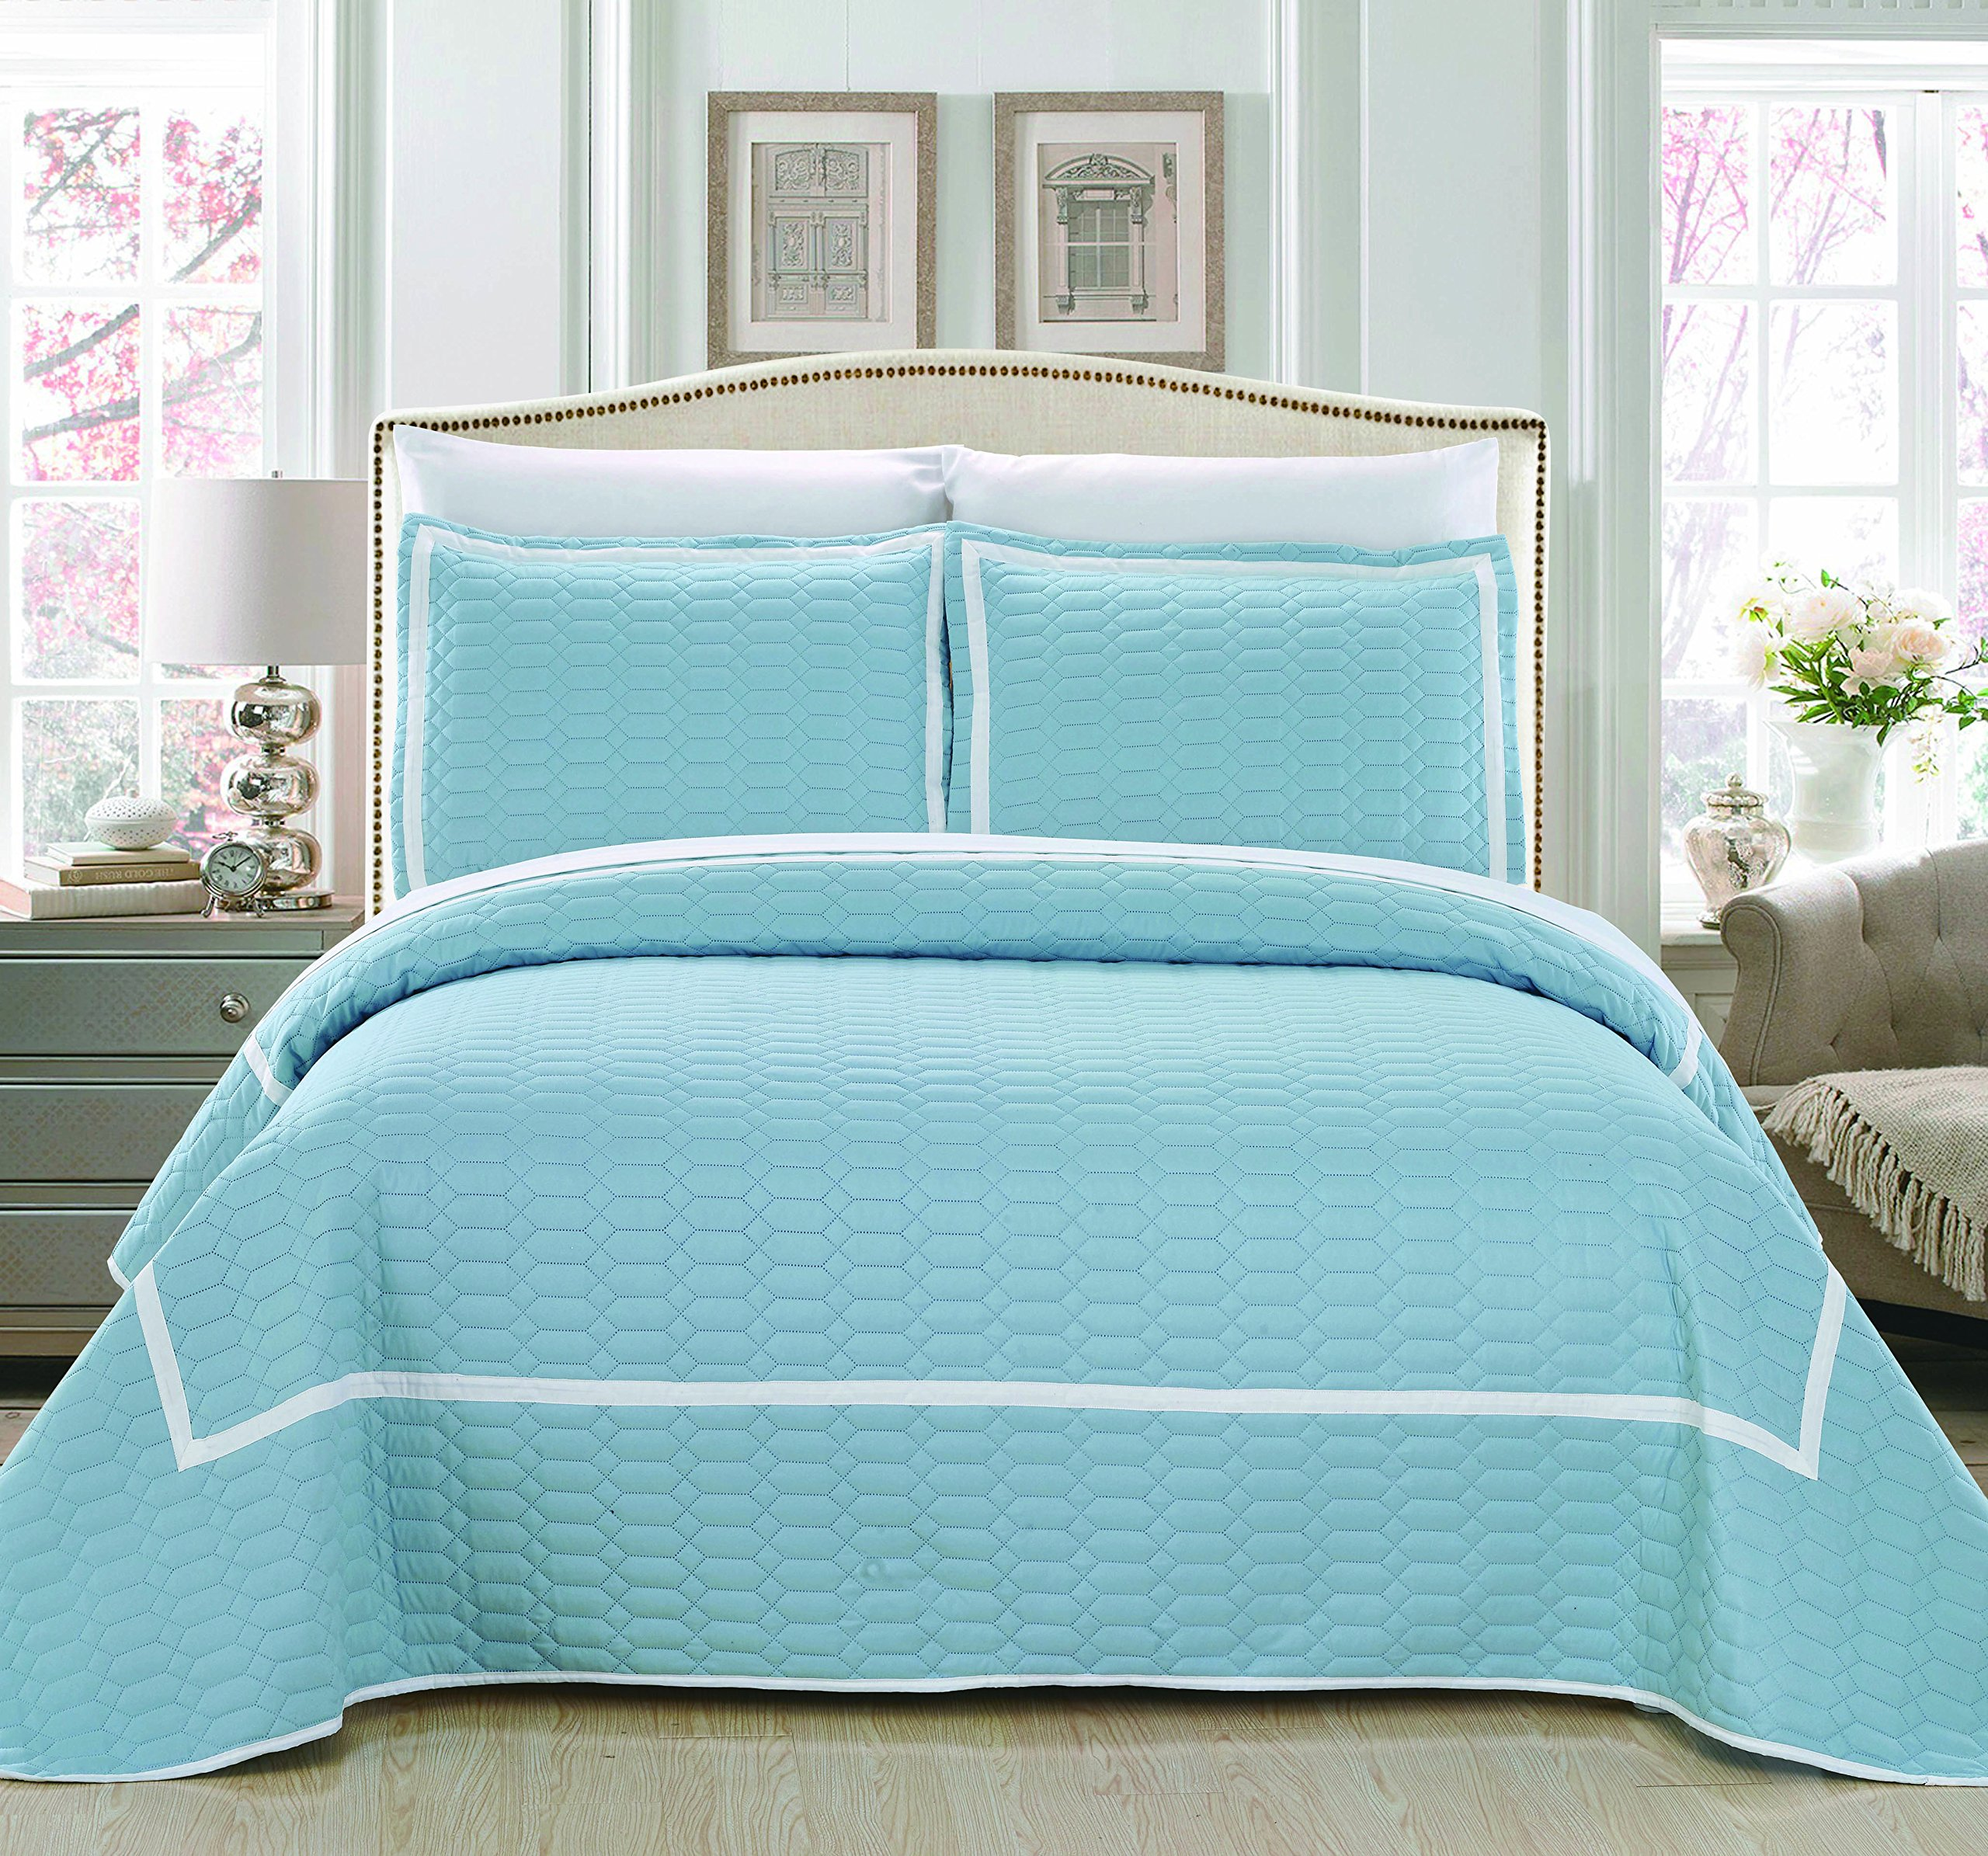 Chic Home 3 Piece Birmingham Hotel Collection 2 Tone Banded Quilted Geometrical Embroidered Quilt Set, Queen, Blue